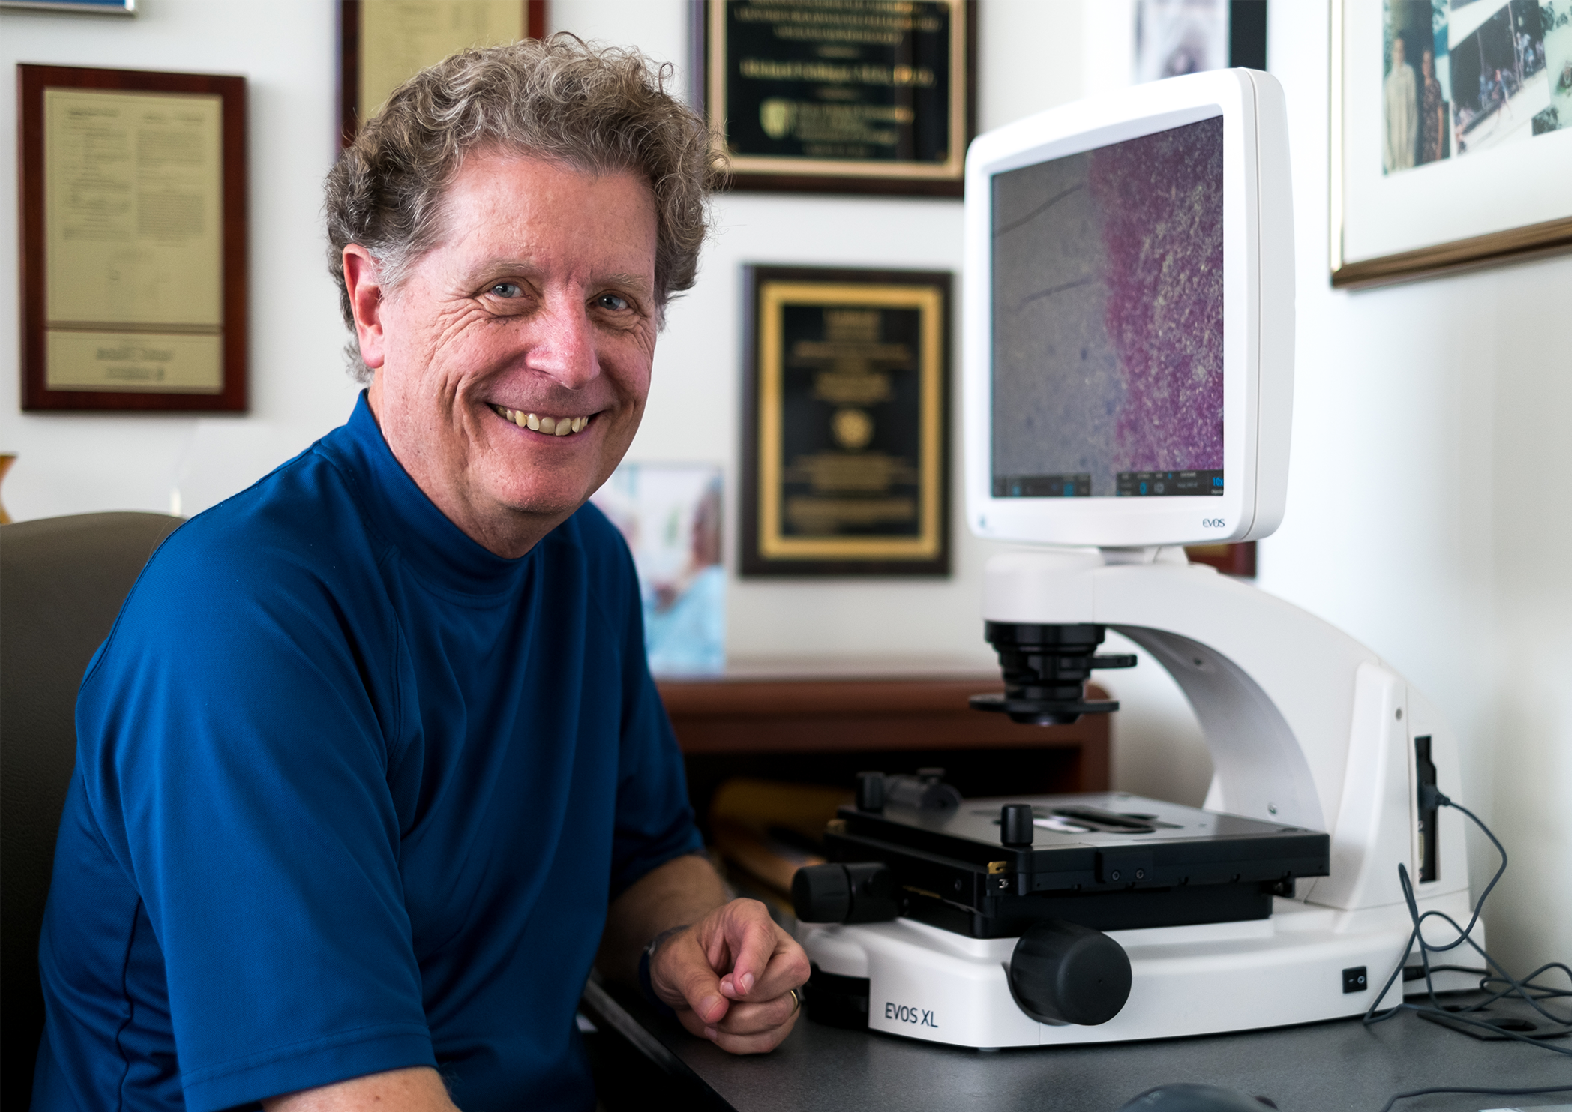 Dr. Richard Schlegel in his office